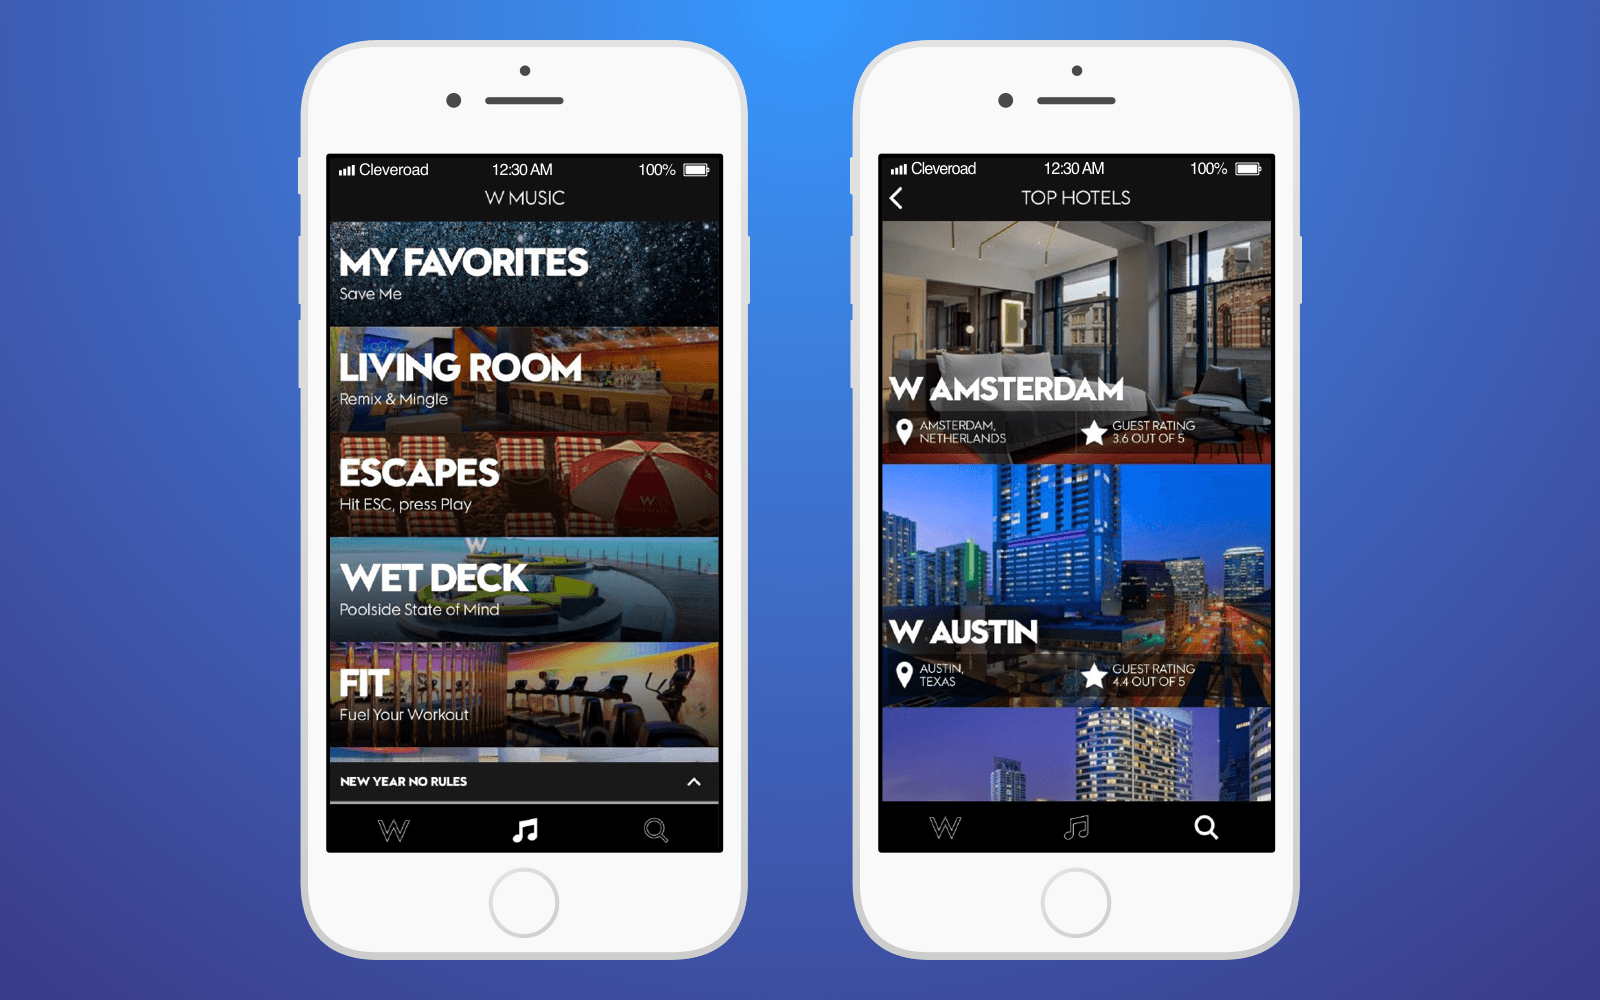 Hotel innovation: W Hotels Worldwide app